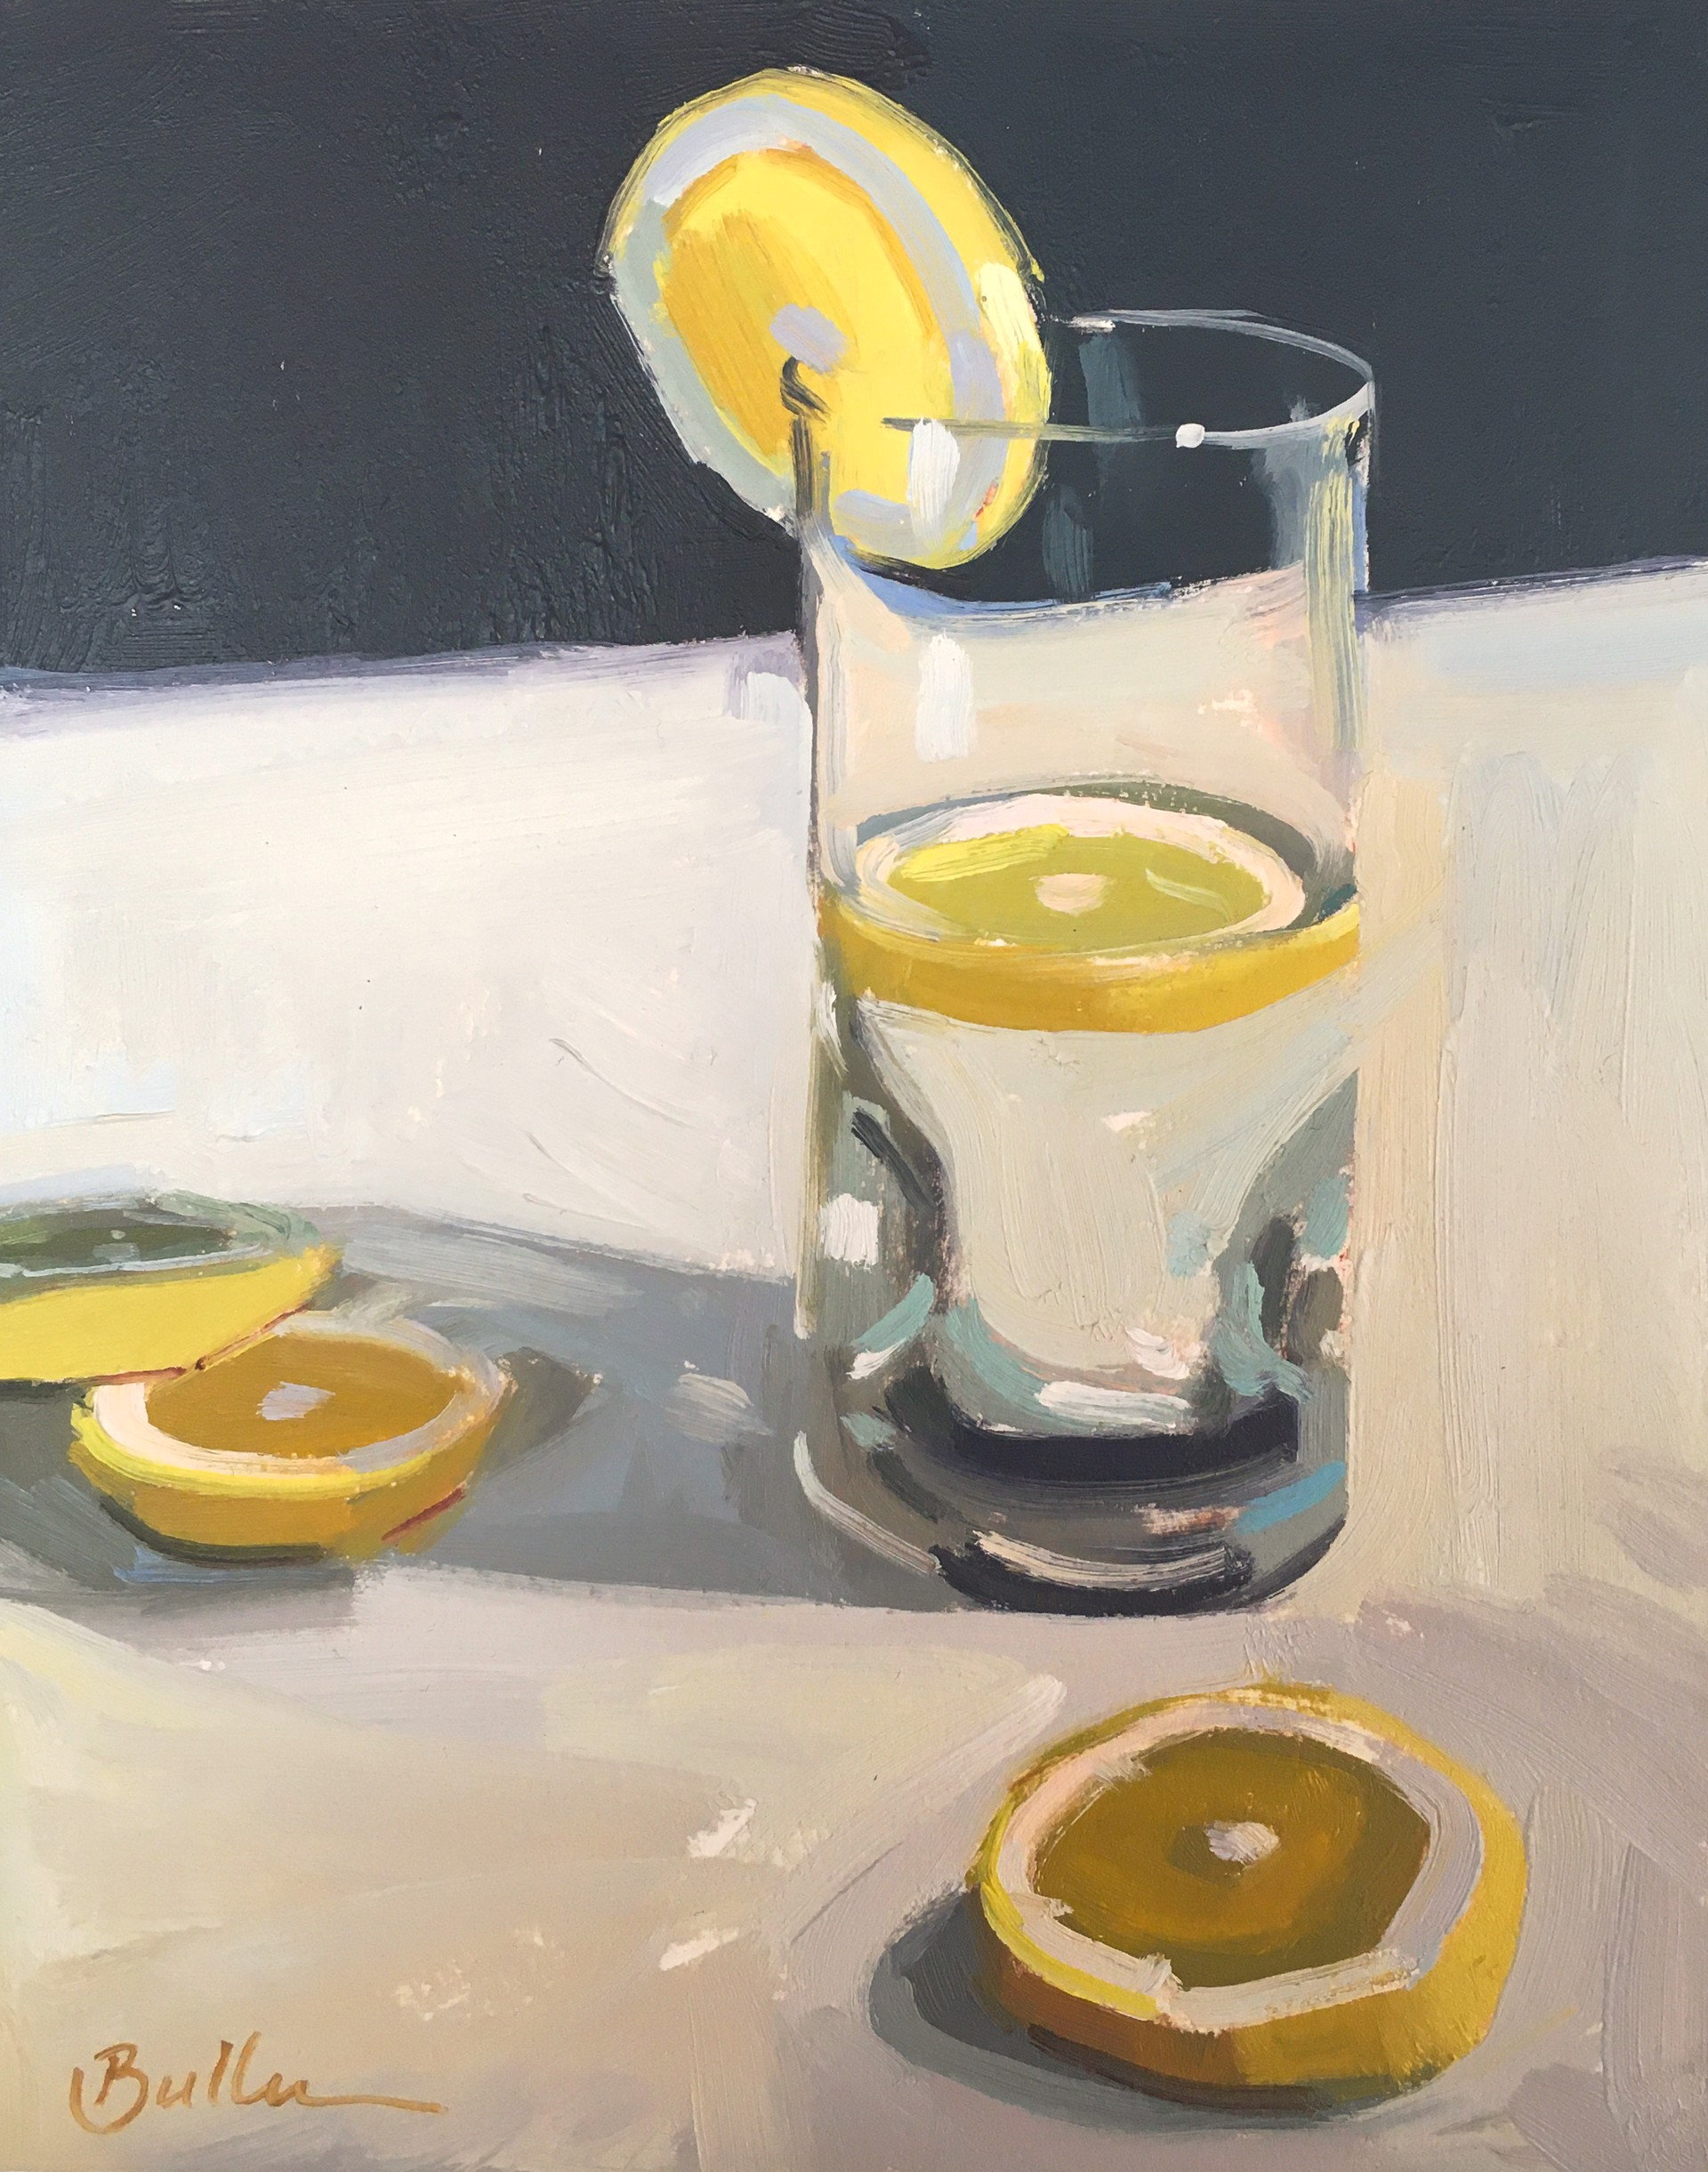 Water with Lemon by Samantha Buller